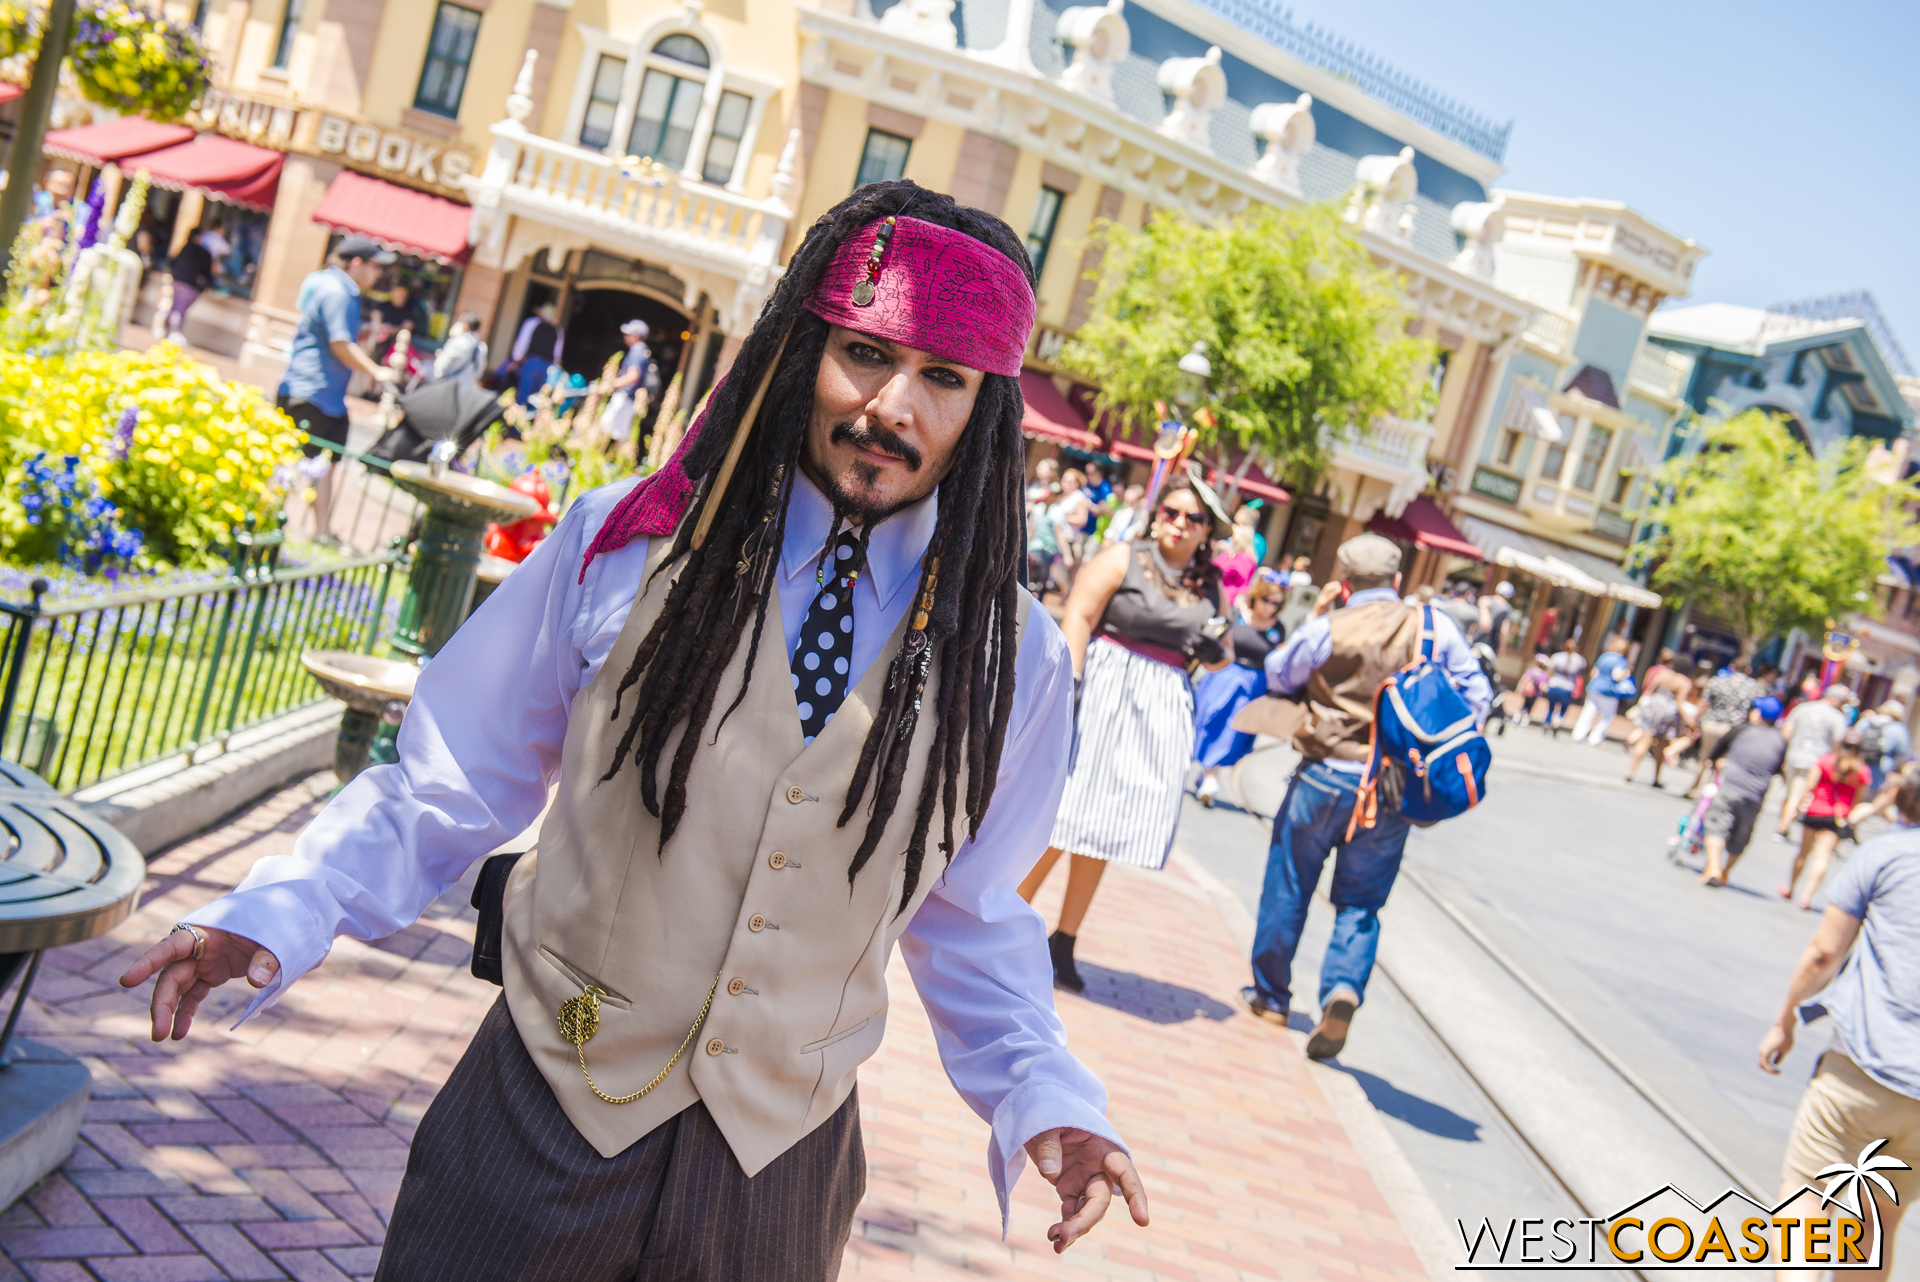 On this day, he was shockingly cleaned up and going around as Dapper Jack.